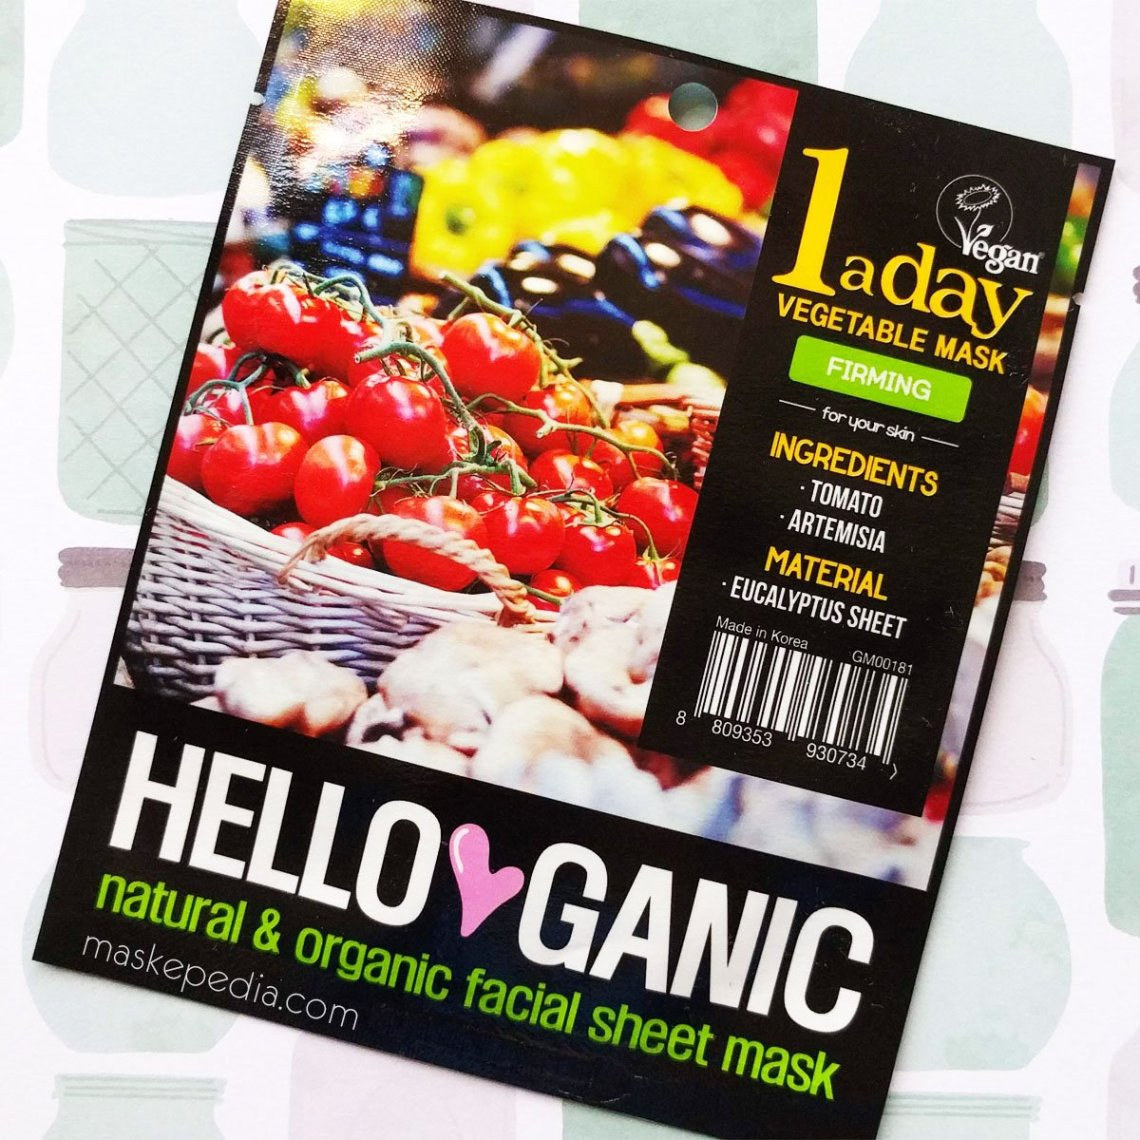 Helloganic One a Day Vegetable Sheet Mask - Firming